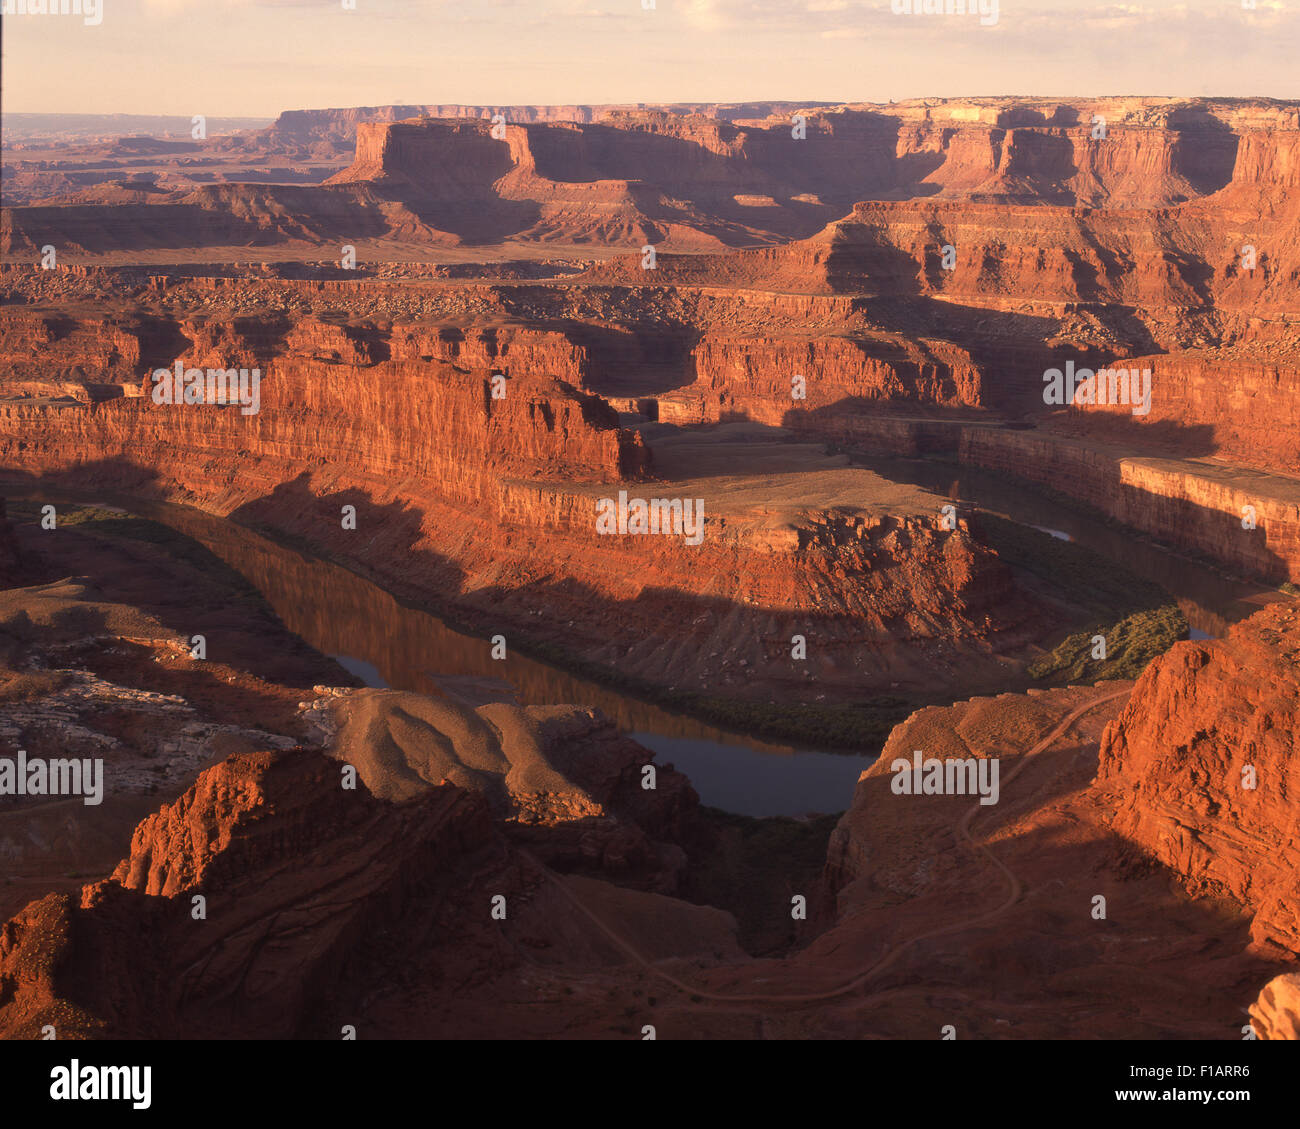 Dead Horse Point State Park Stockfoto